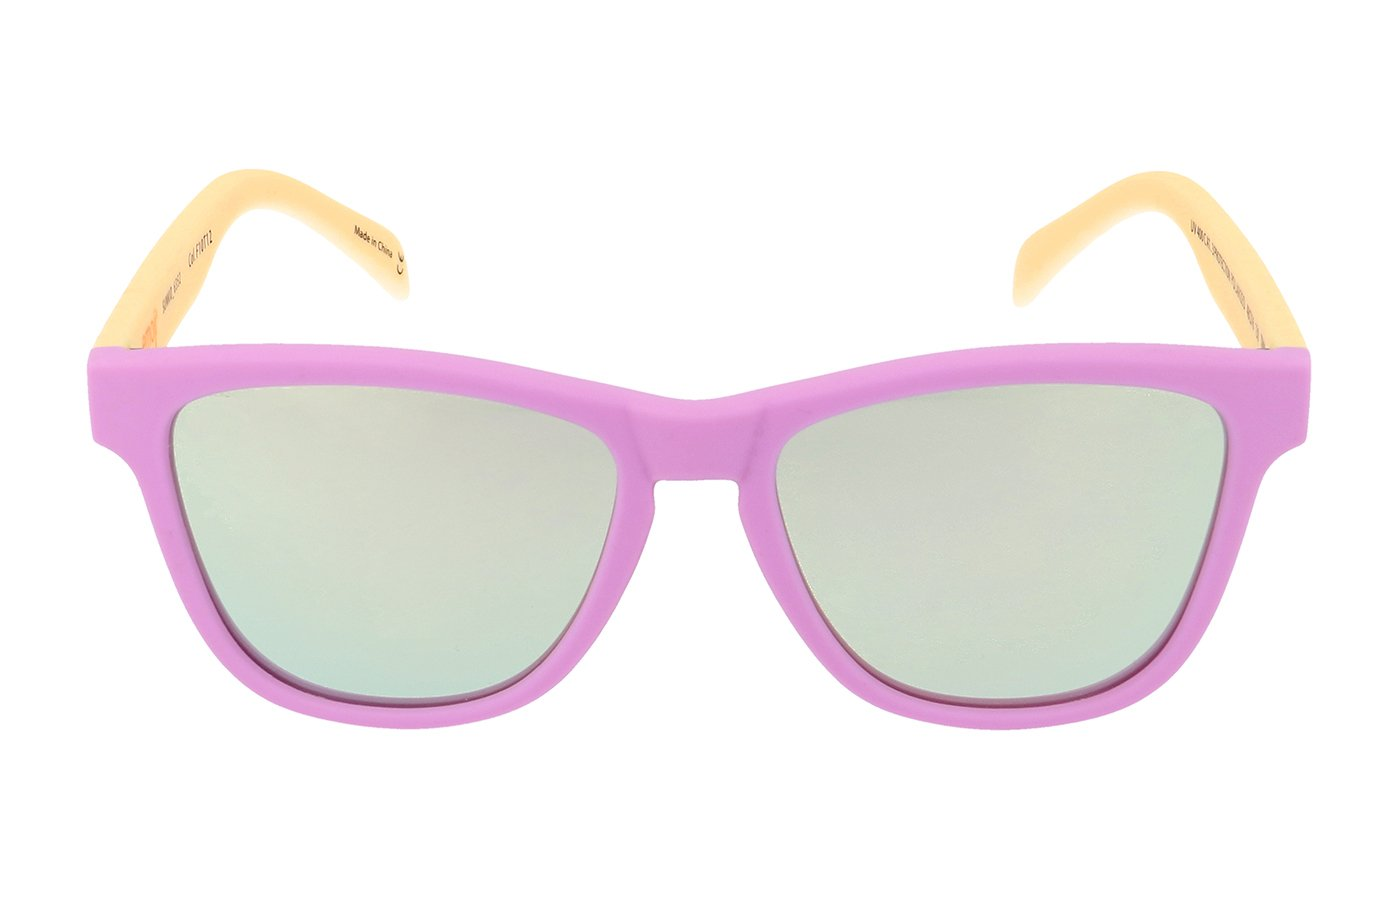 DEVIL YELLOW EMOJI SUNGLASSES FOR KIDS